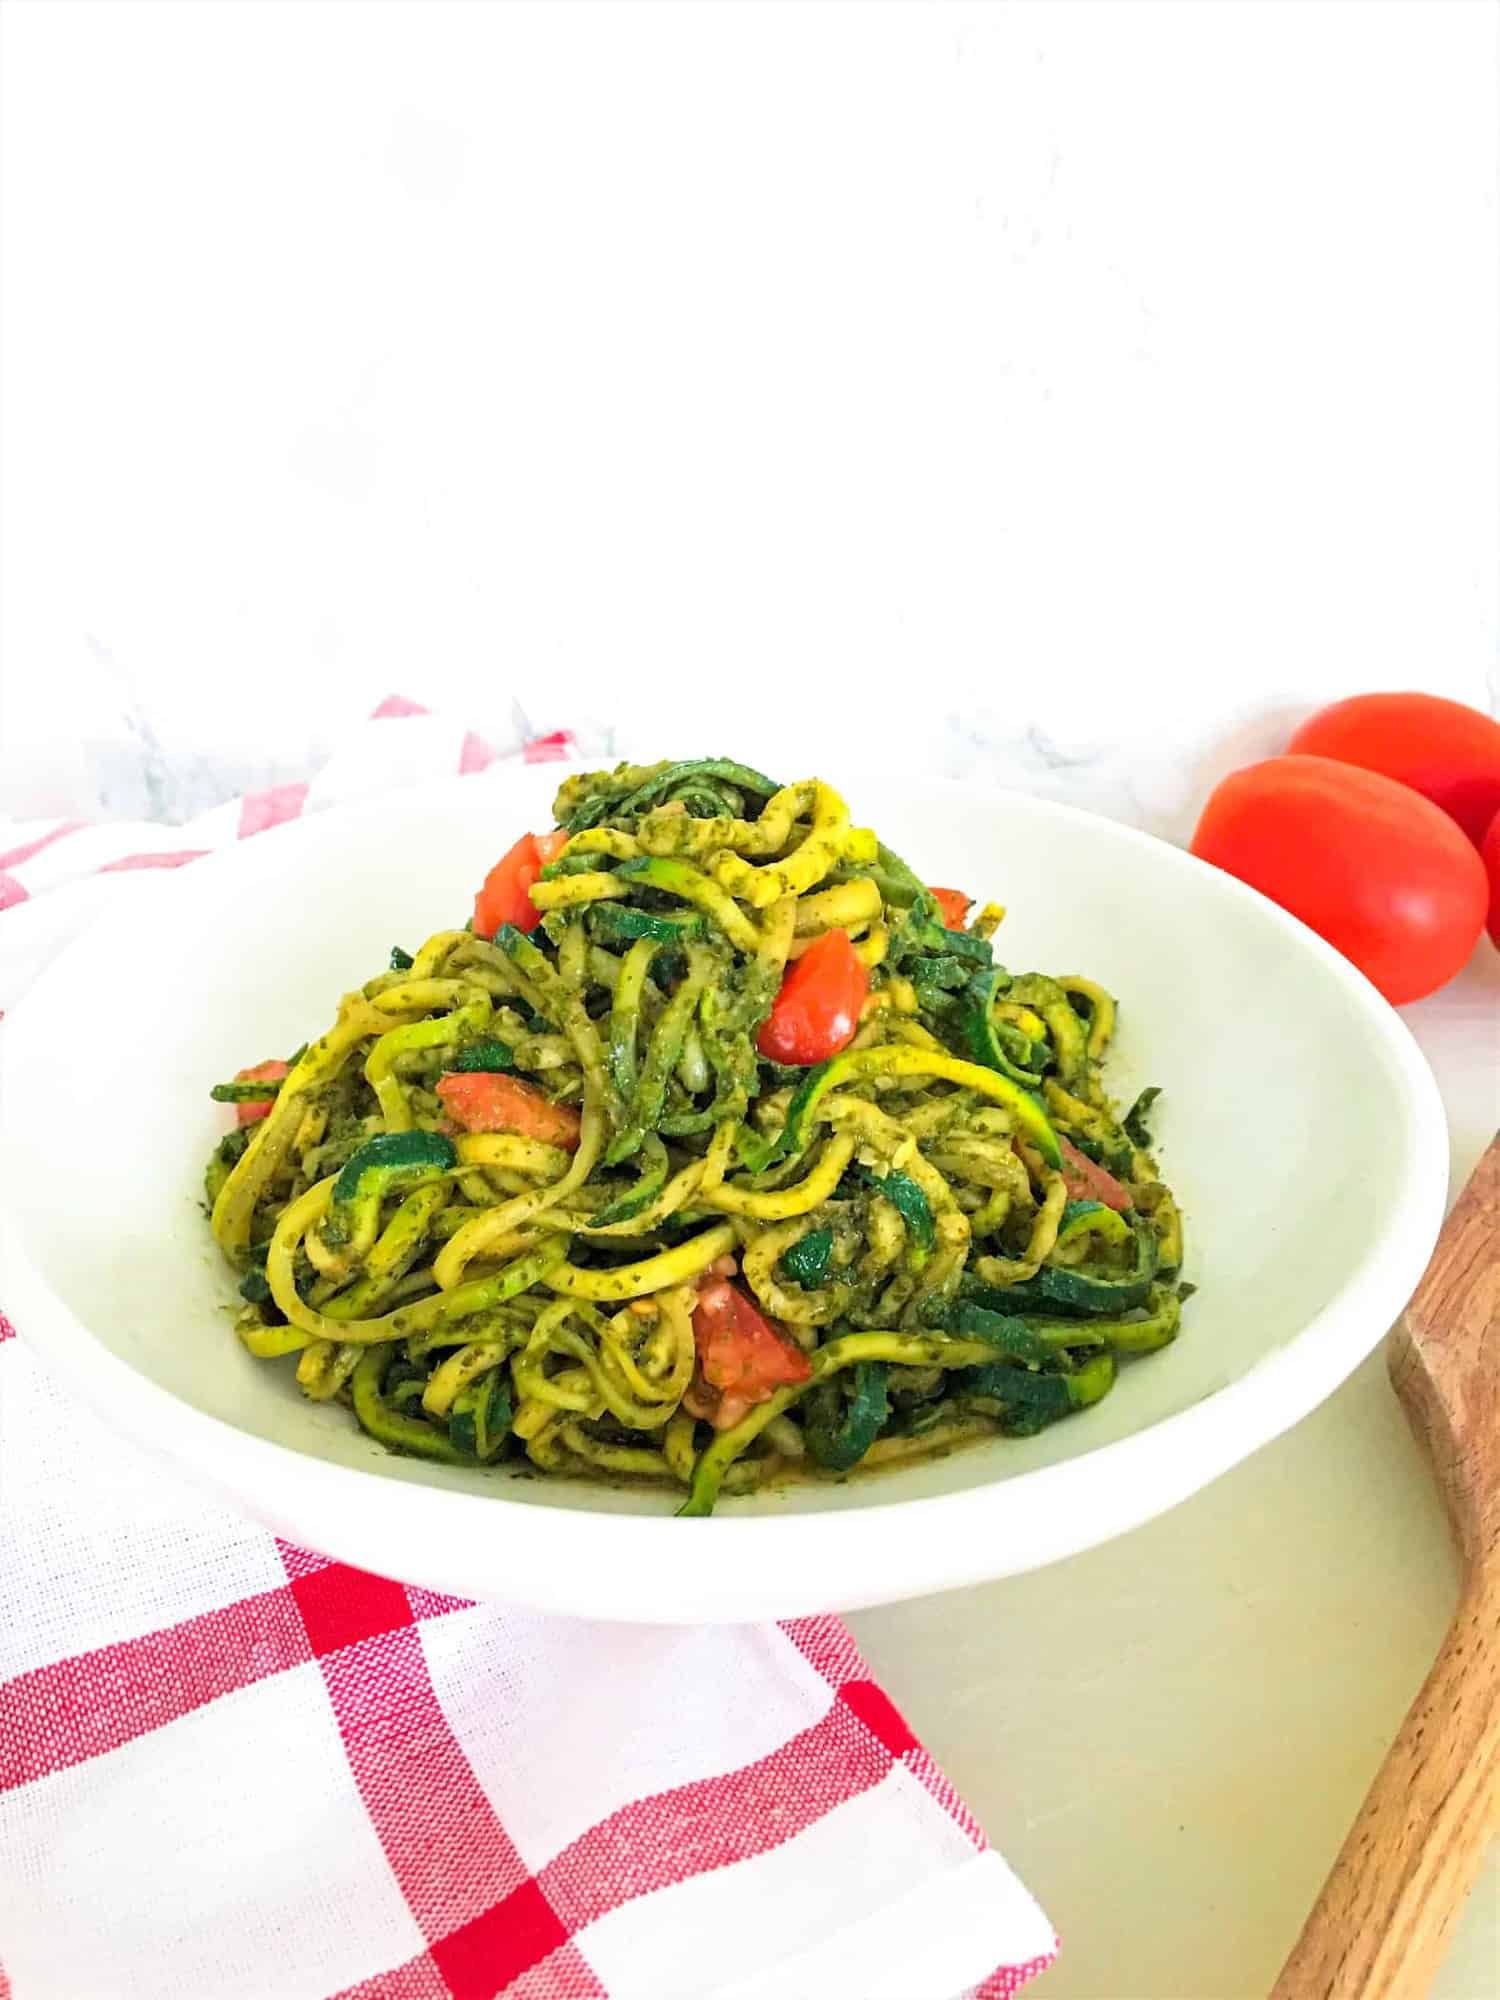 pesto zucchini noodles in plate with tomatoes in background